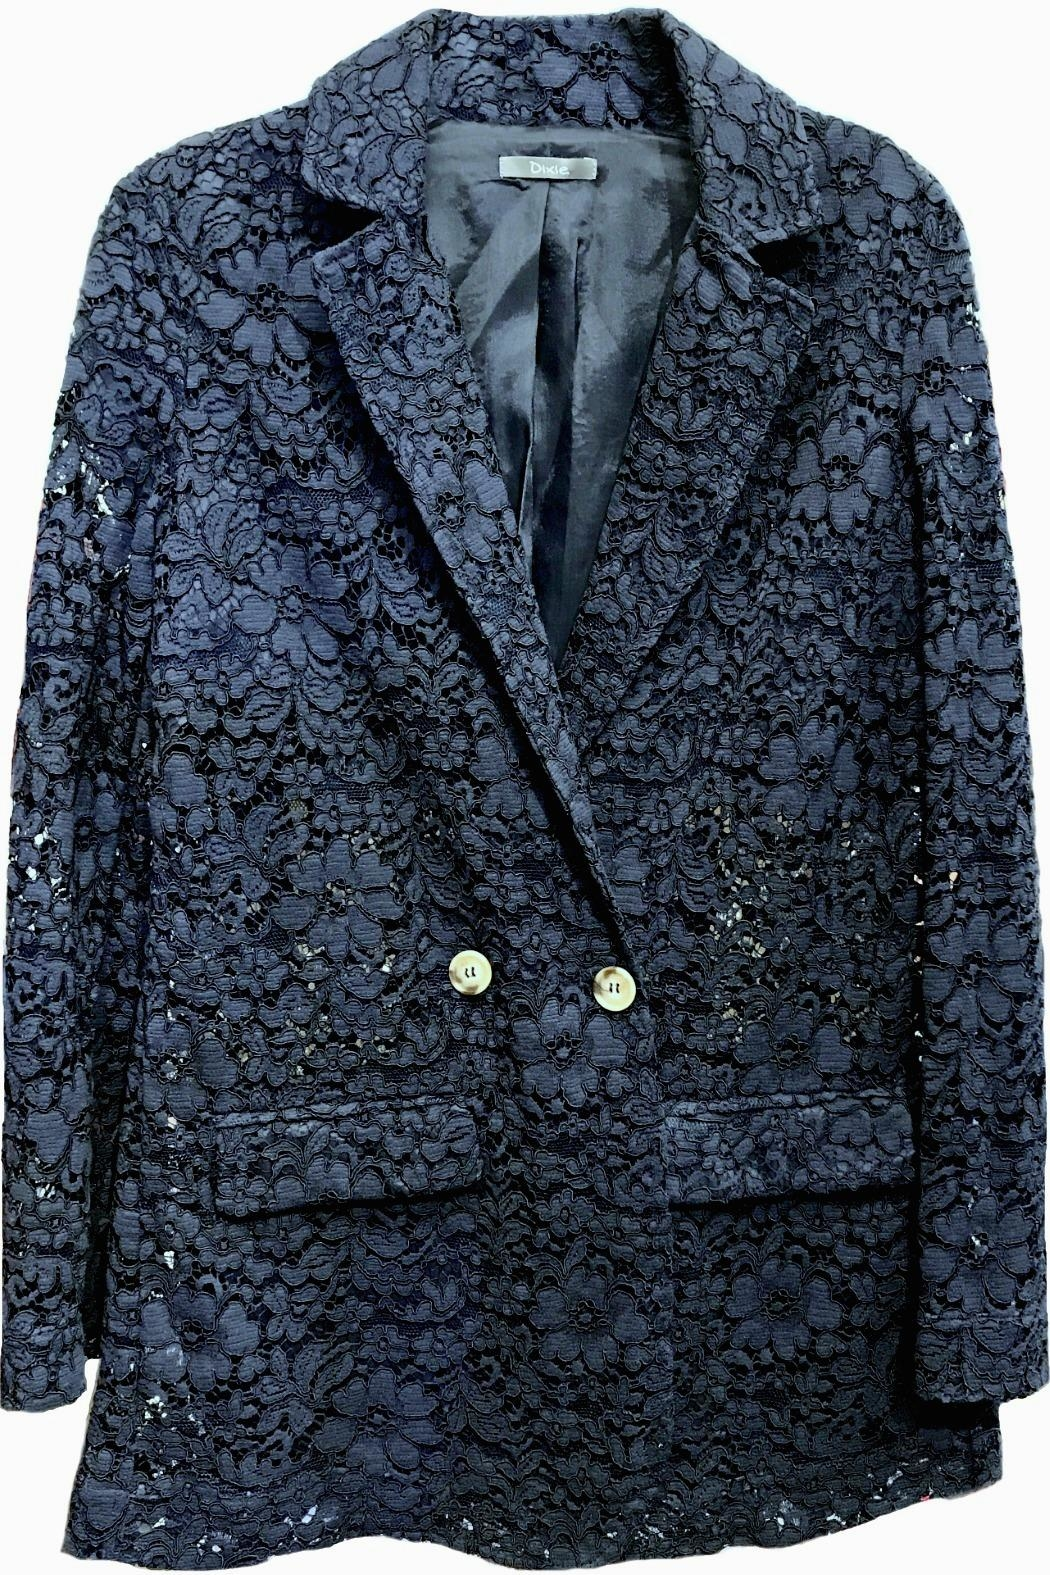 Dixie Navy Lace Blazer - Main Image